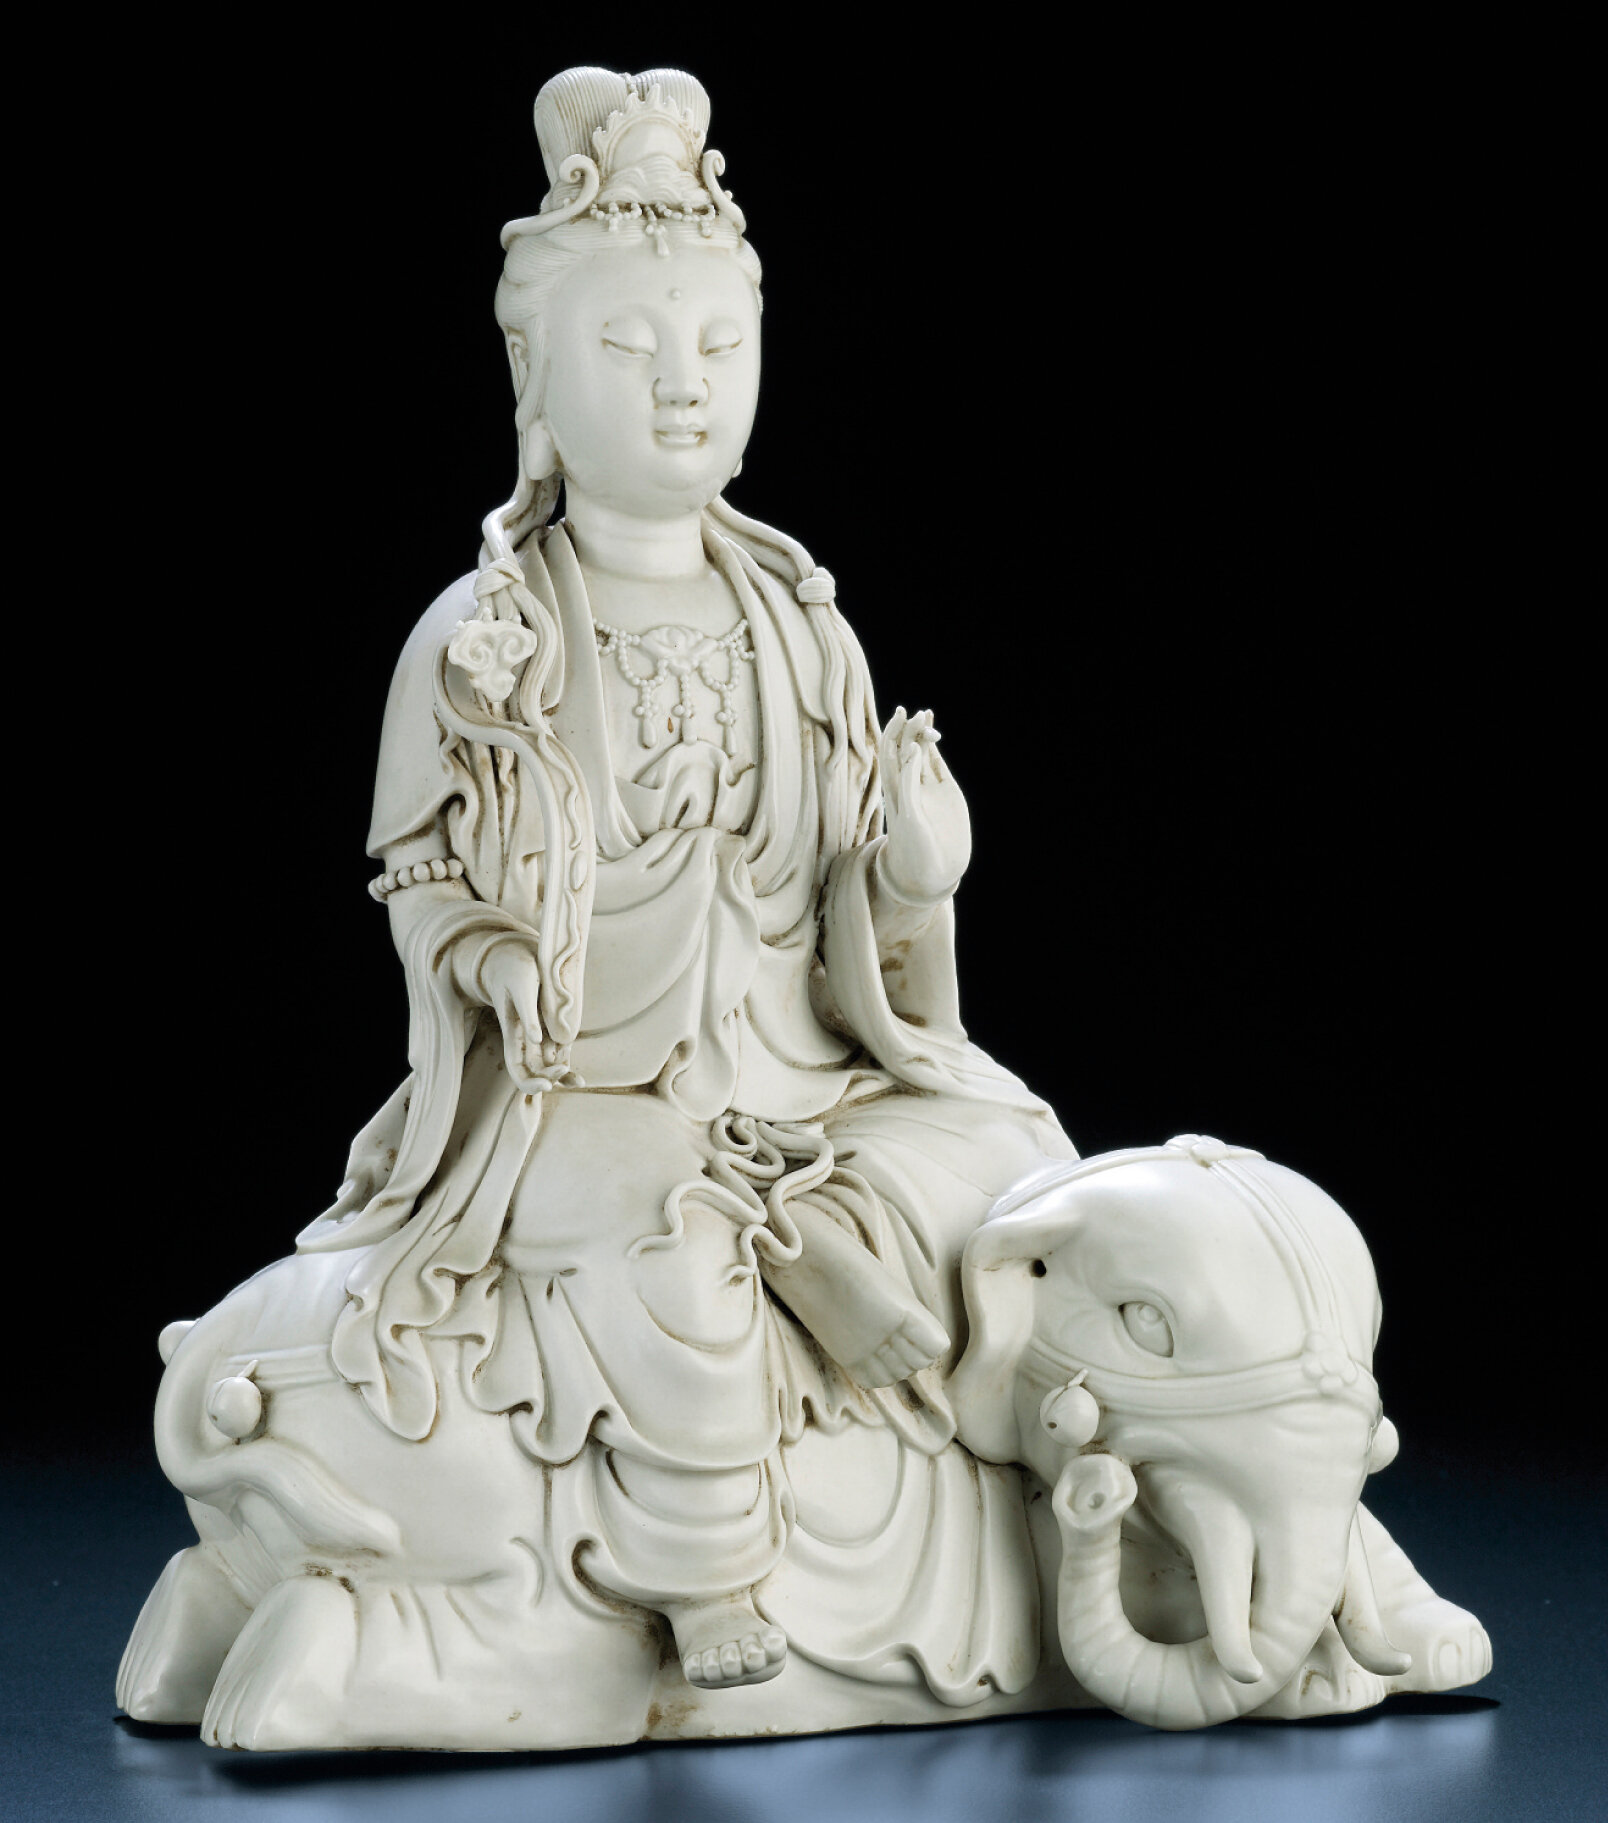 A Dehua seated figure of Samantabhadra, Qing dynasty, late 19th-early 20th century